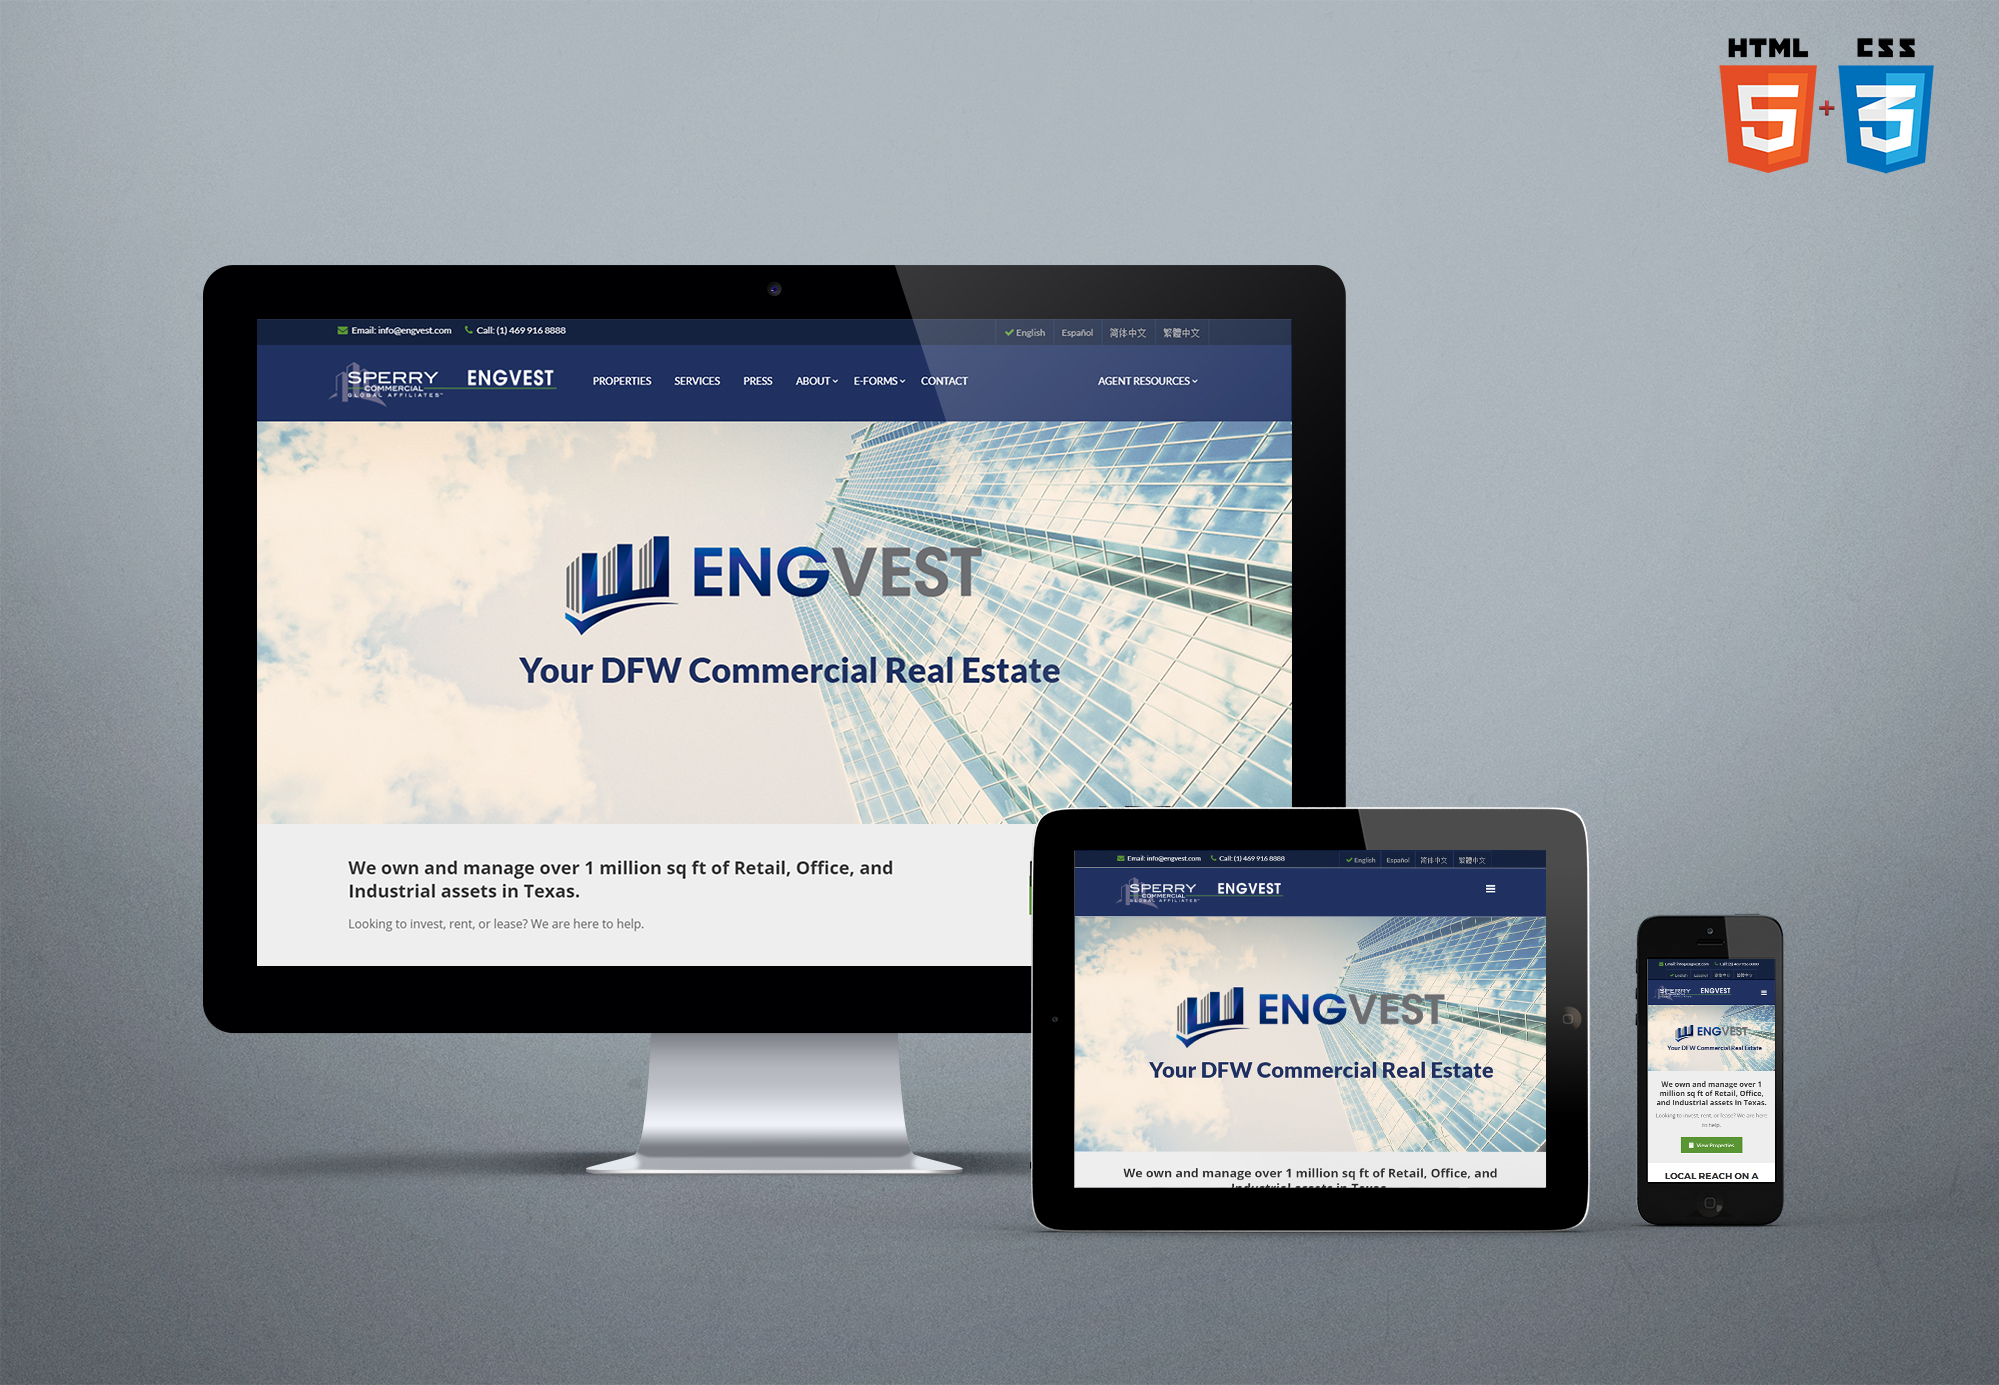 Engvest 1: Responsive and mobile-friendly webiste in four languages